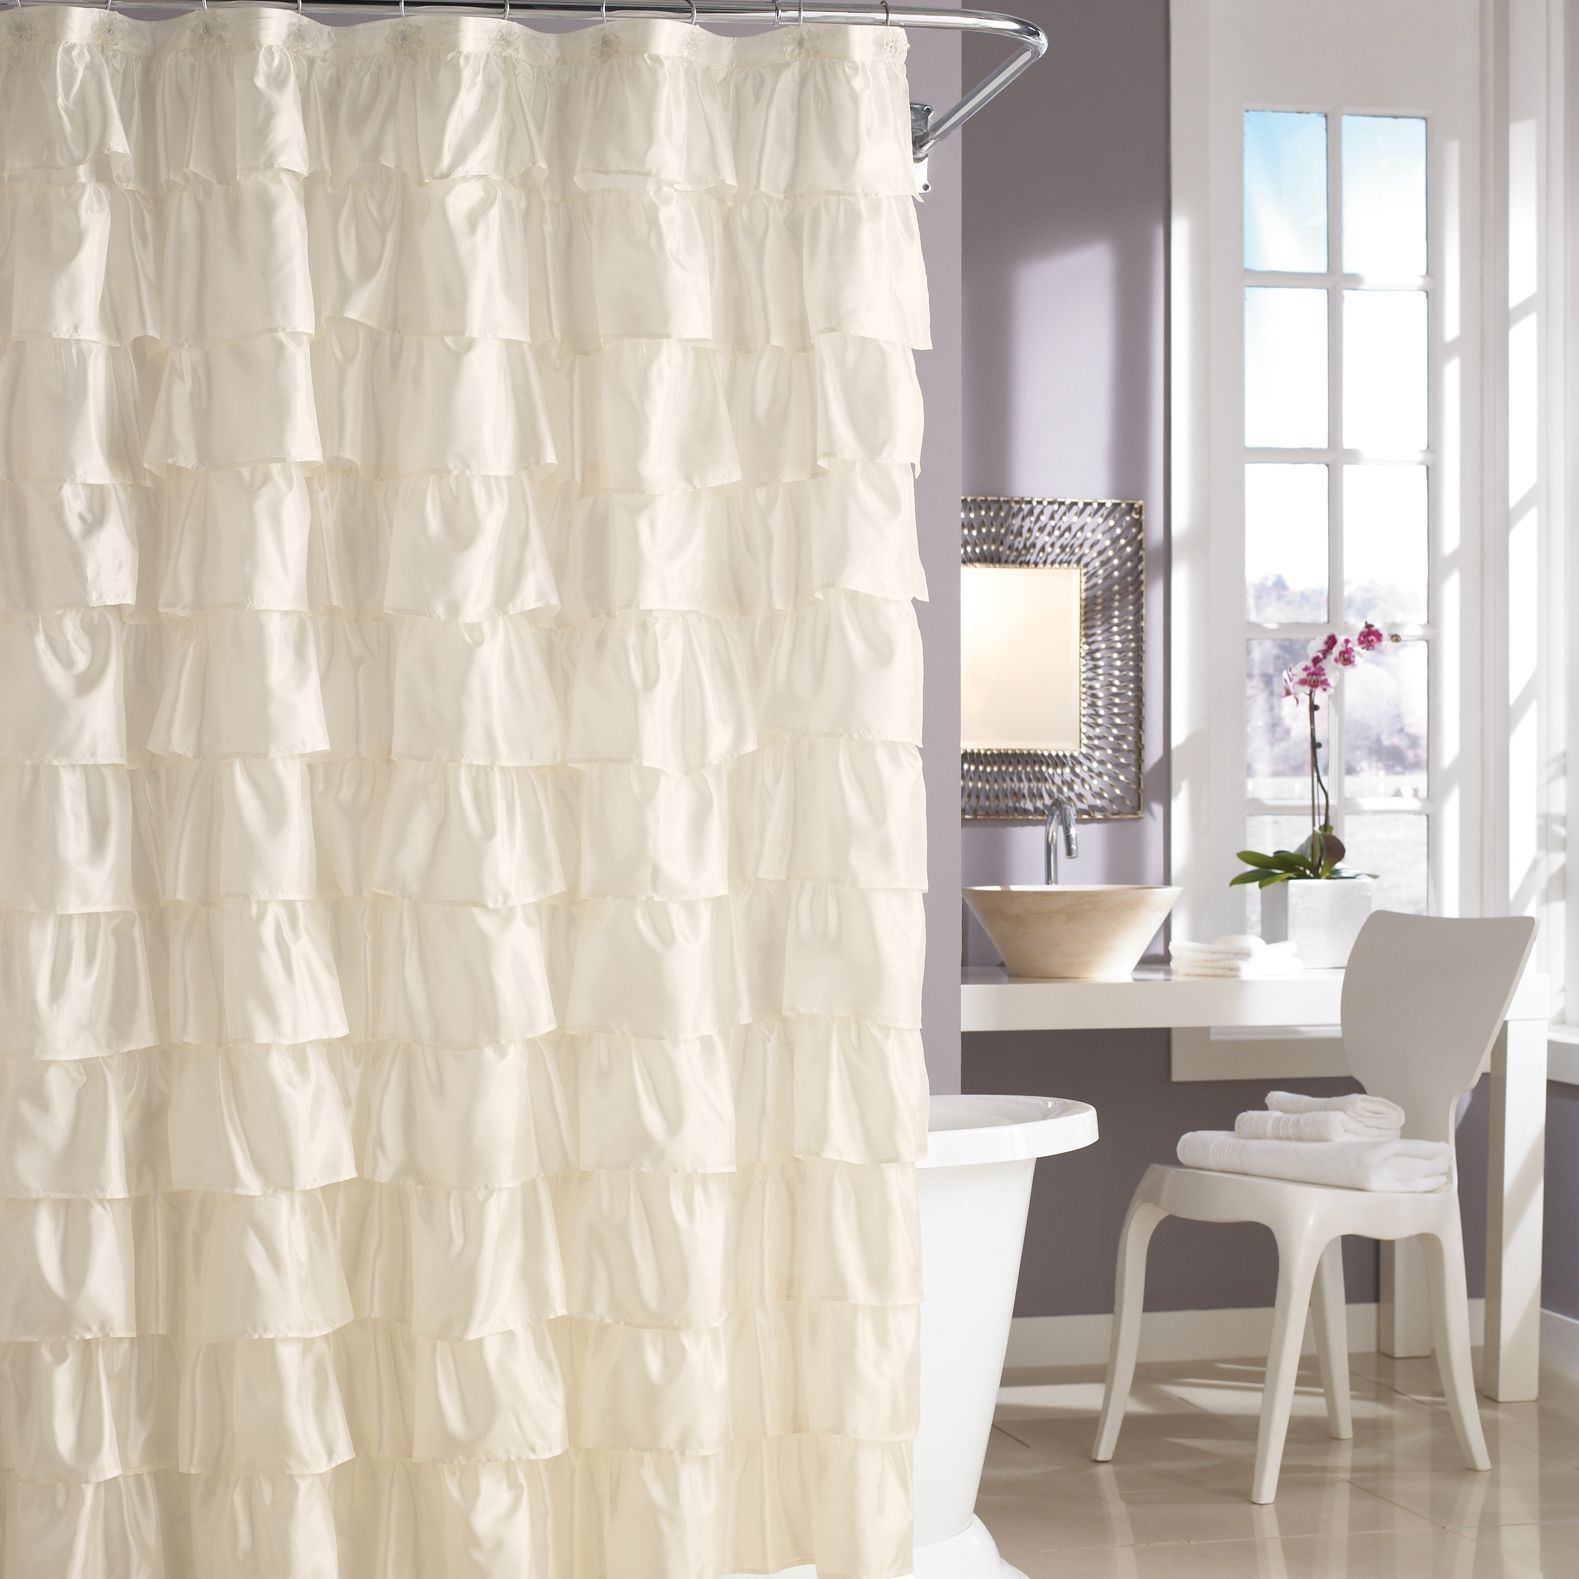 Steve Madden shower curtain?! $29.99 | La Maison ...